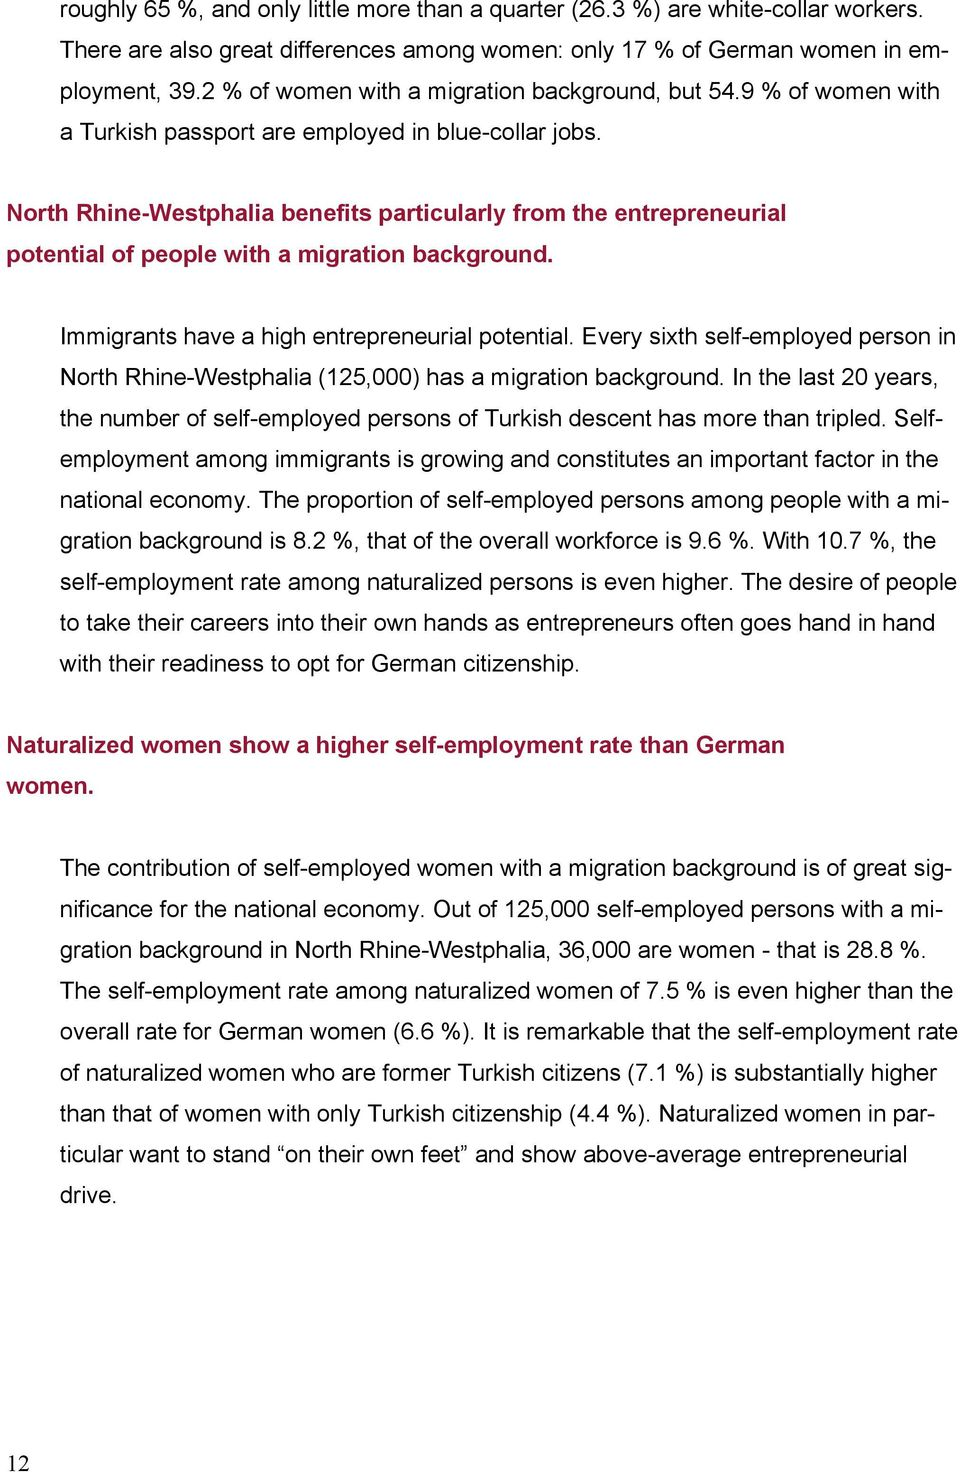 North Rhine-Westphalia benefits particularly from the entrepreneurial potential of people with a migration background. Immigrants have a high entrepreneurial potential.